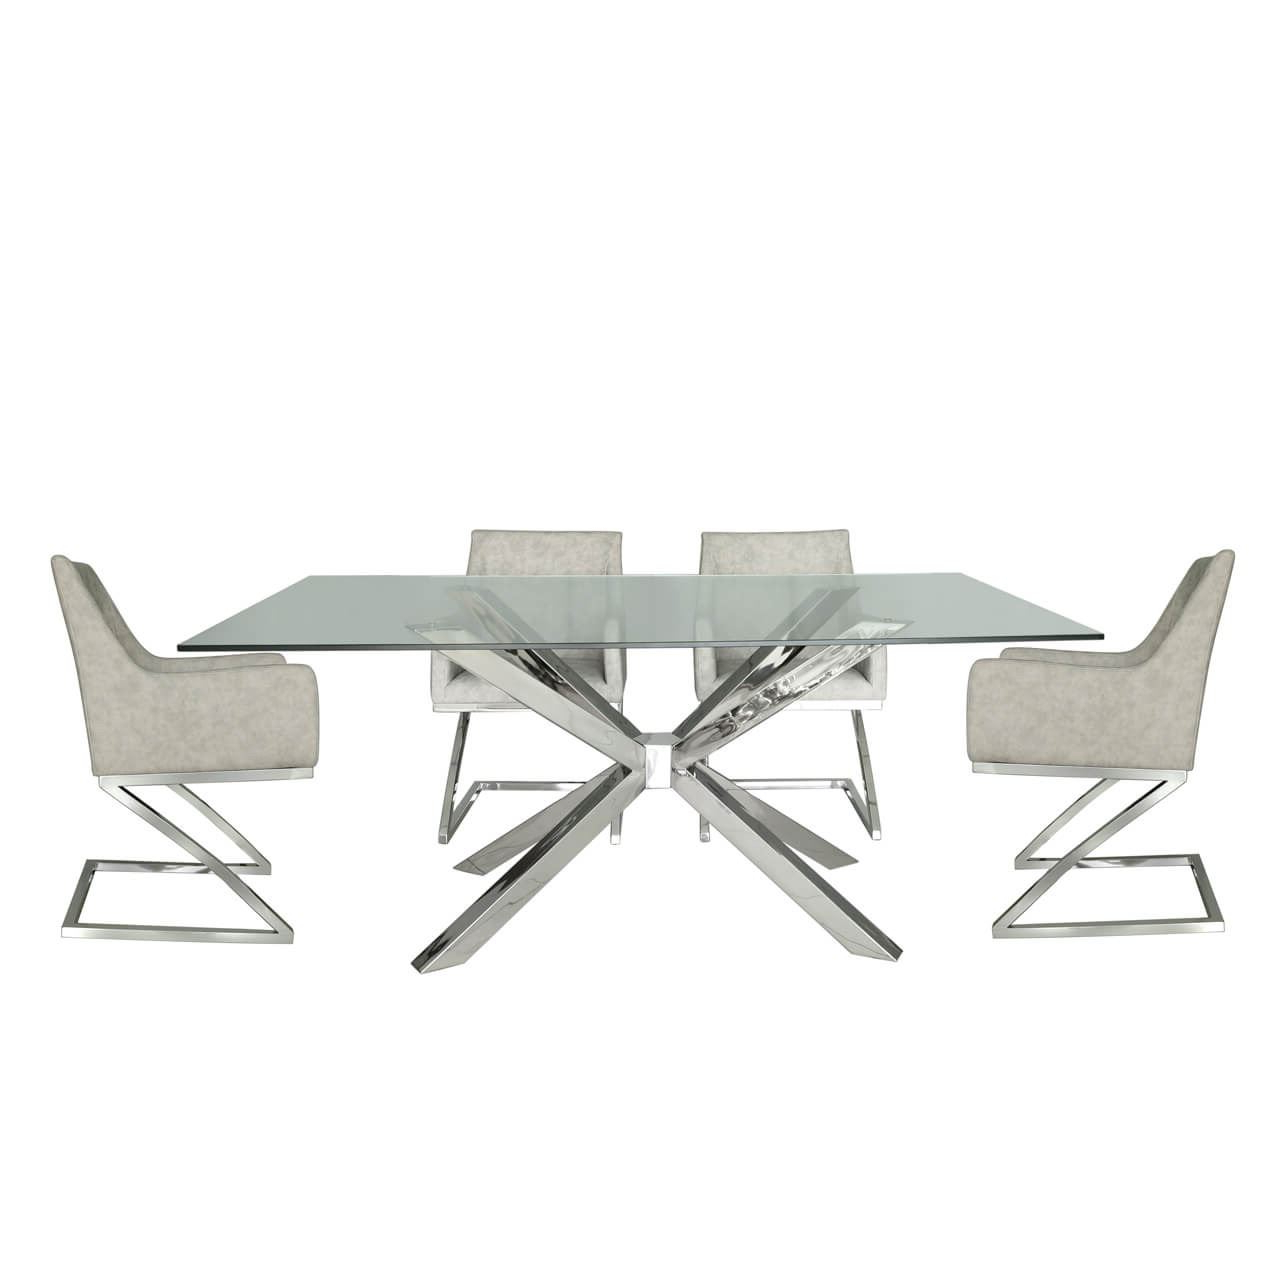 Details About Tempered Glass Steel Chrome Chrome And Glass Dining Table & 4 Light Grey Chairs Within Famous Chrome Dining Tables With Tempered Glass (View 19 of 25)